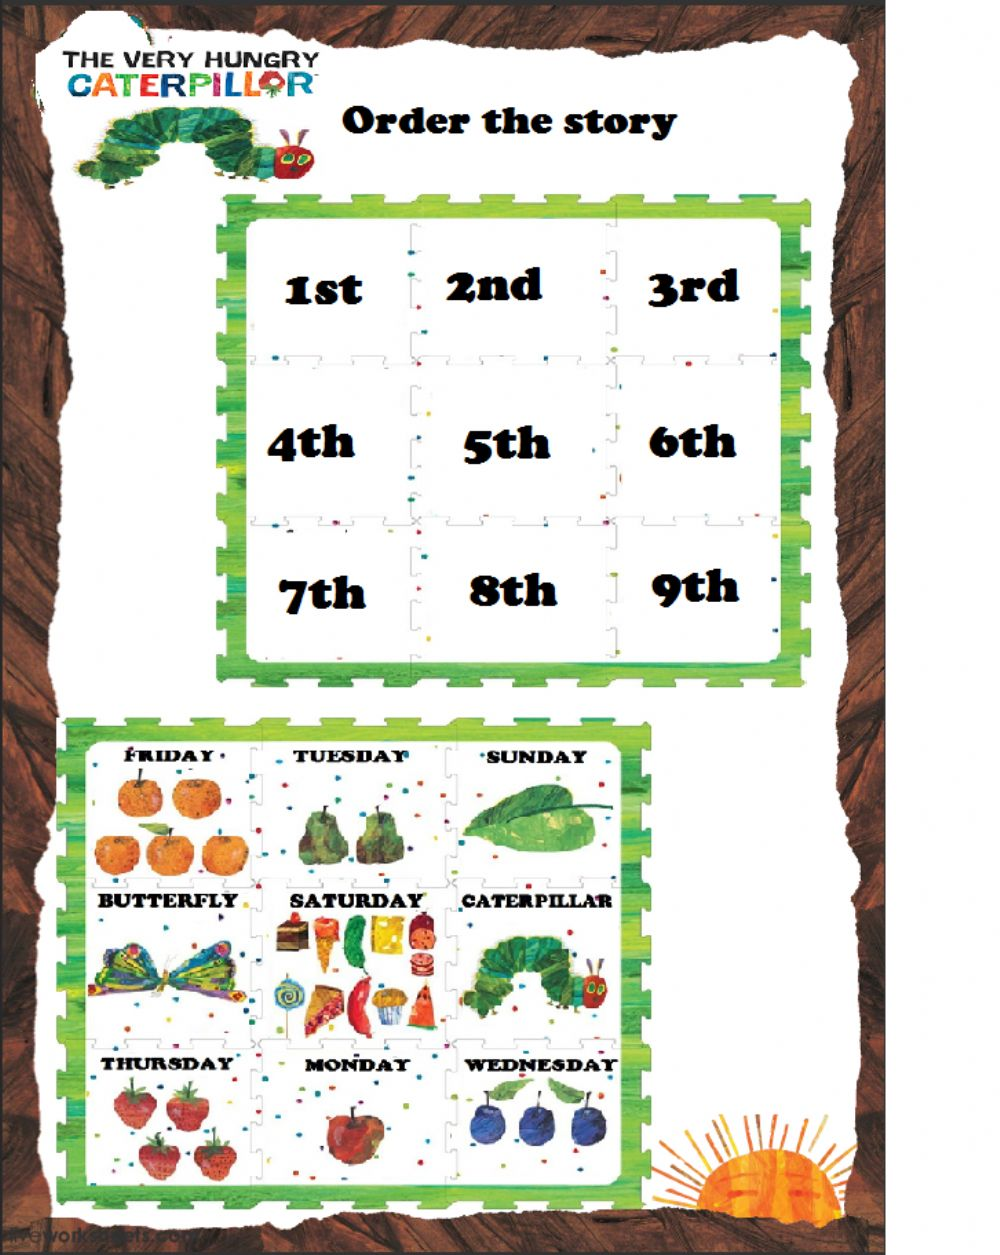 The Very Hungry Caterpillar online pdf exercise for grade 21